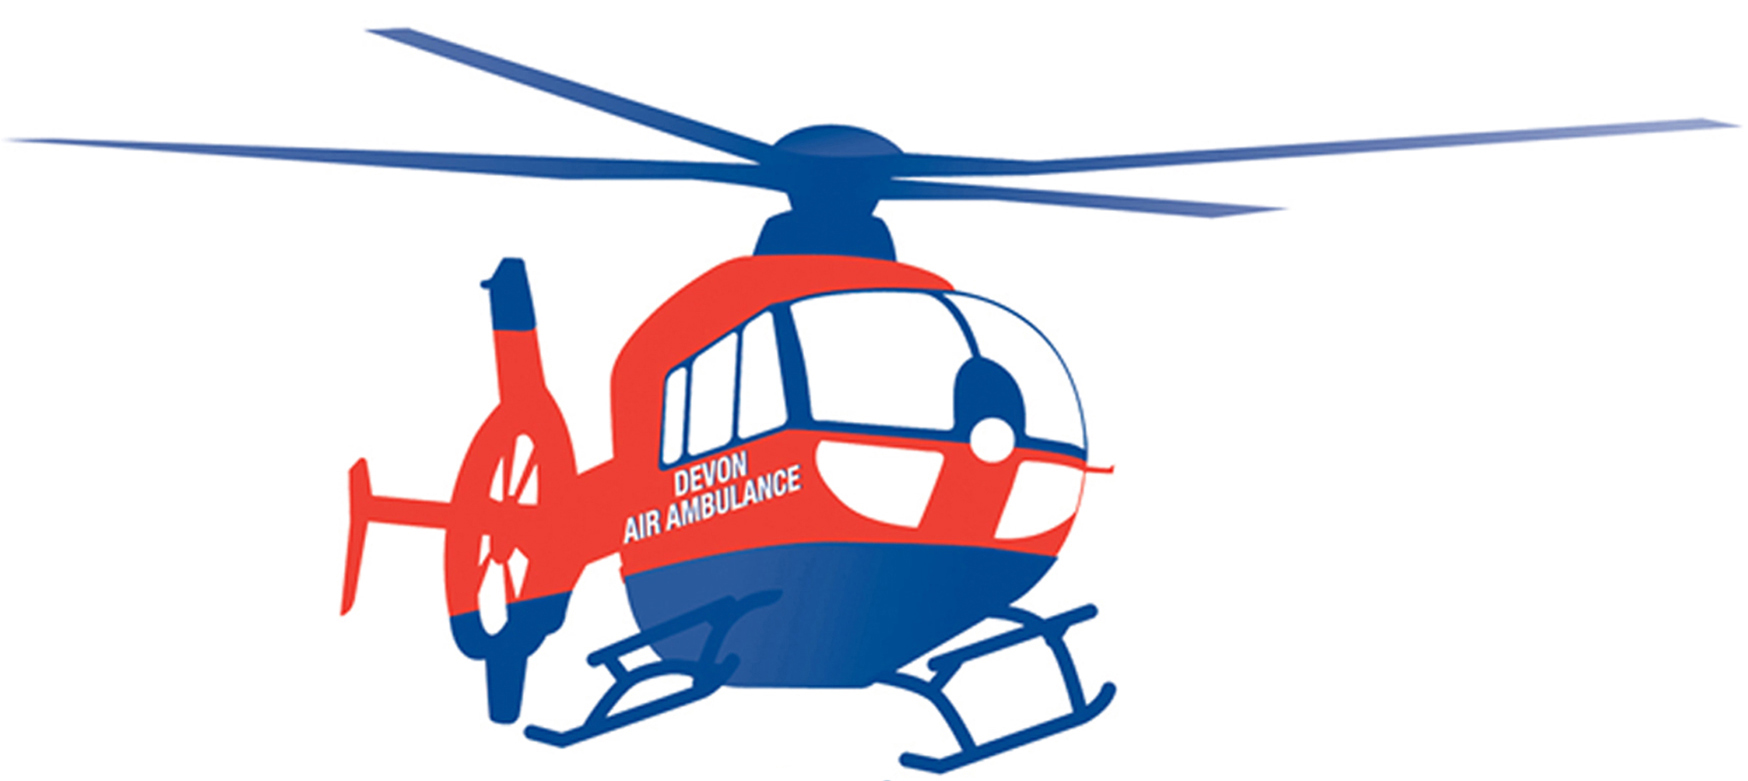 Air ambulance clipart.